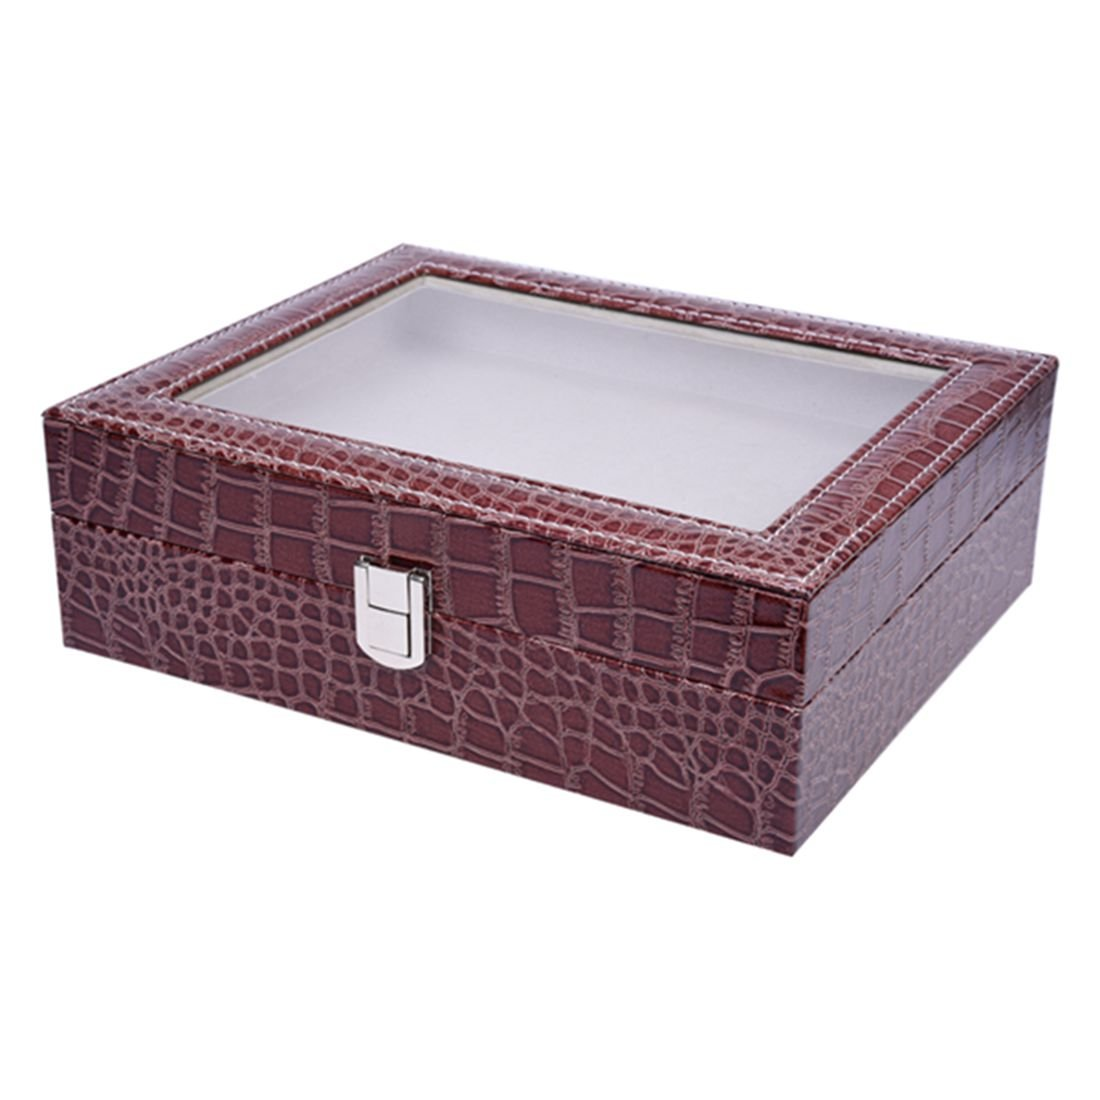 SODIAL(R) Faux Leather Watch Case Storage Display Box Organiser Jewelery Glass Top Size:10 Grid Crocodile Brown